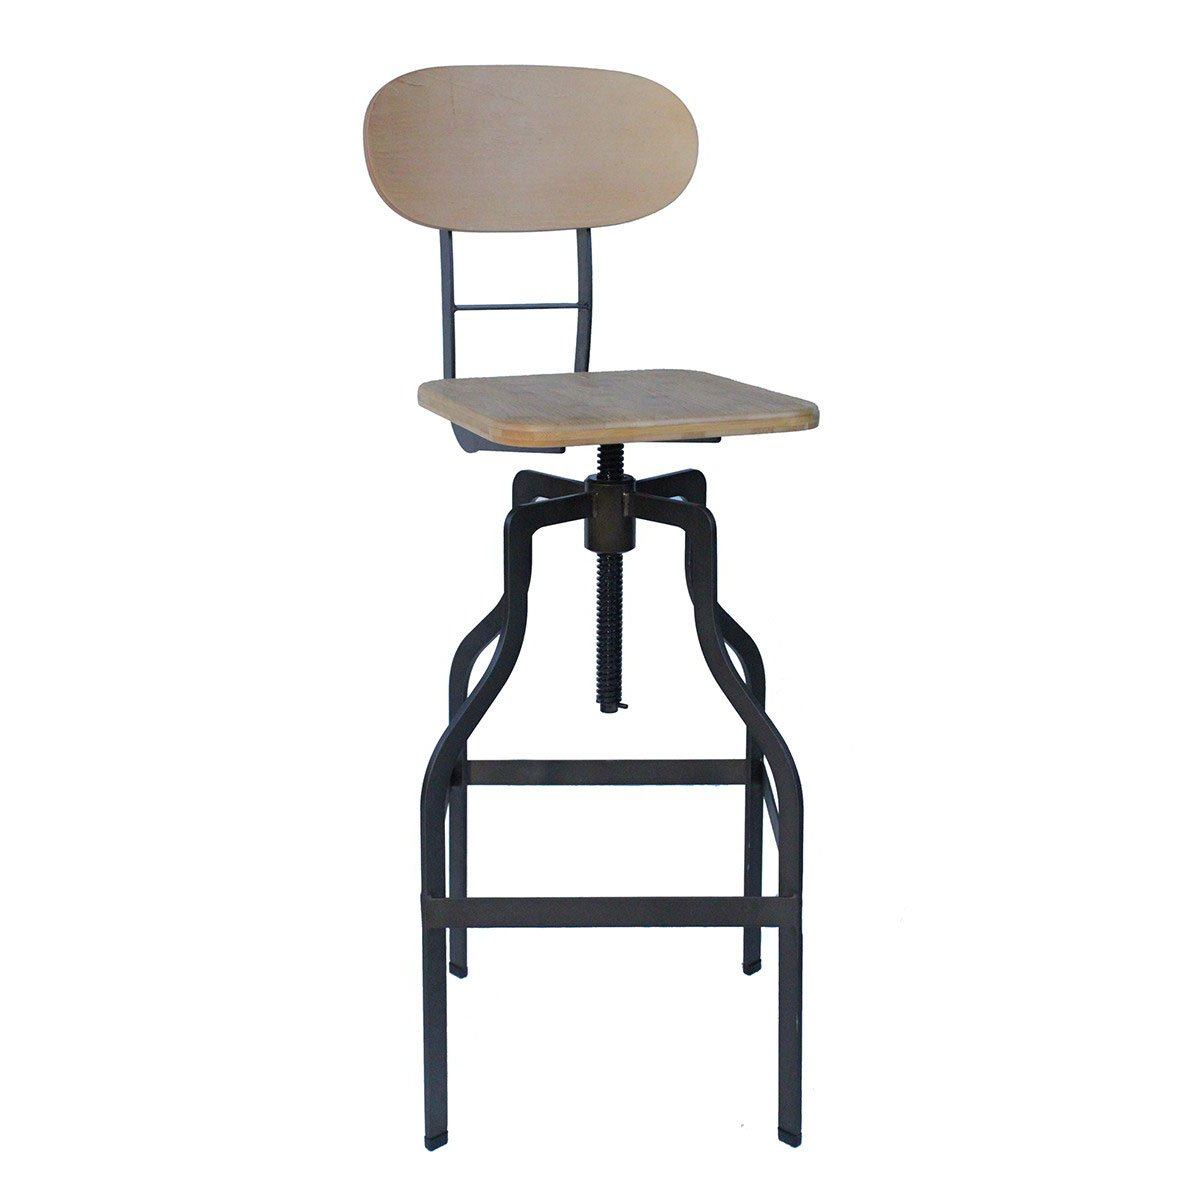 Bolzano Vintage Bar Stool - Natural Product Image